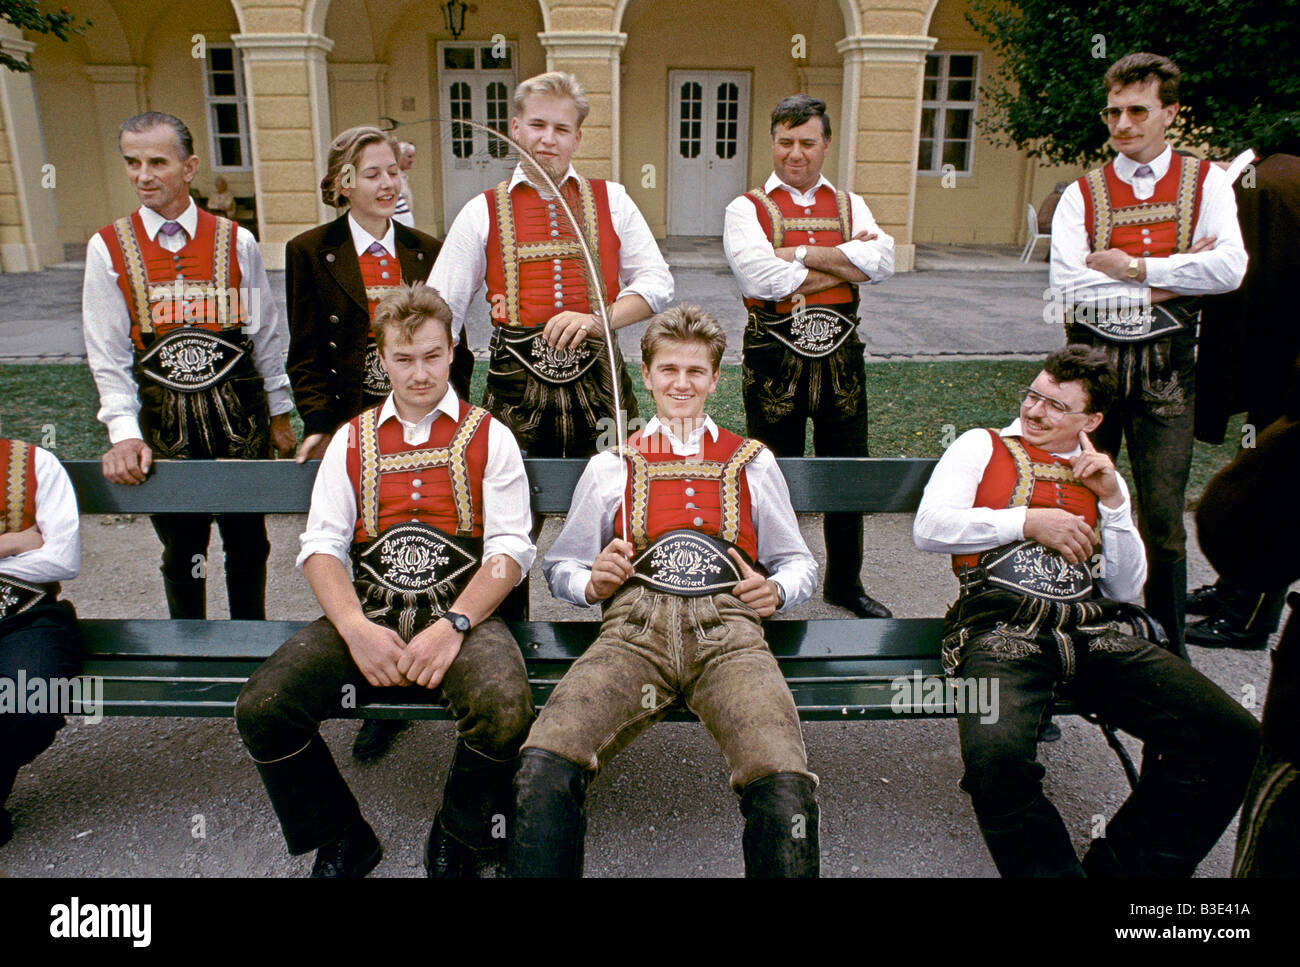 VIENNA 1995 THE BURGER MUSIC GROUP FROM ST MICHAEL WEAR TRADITIONAL AUSTRIAN COSTUME - Stock Image